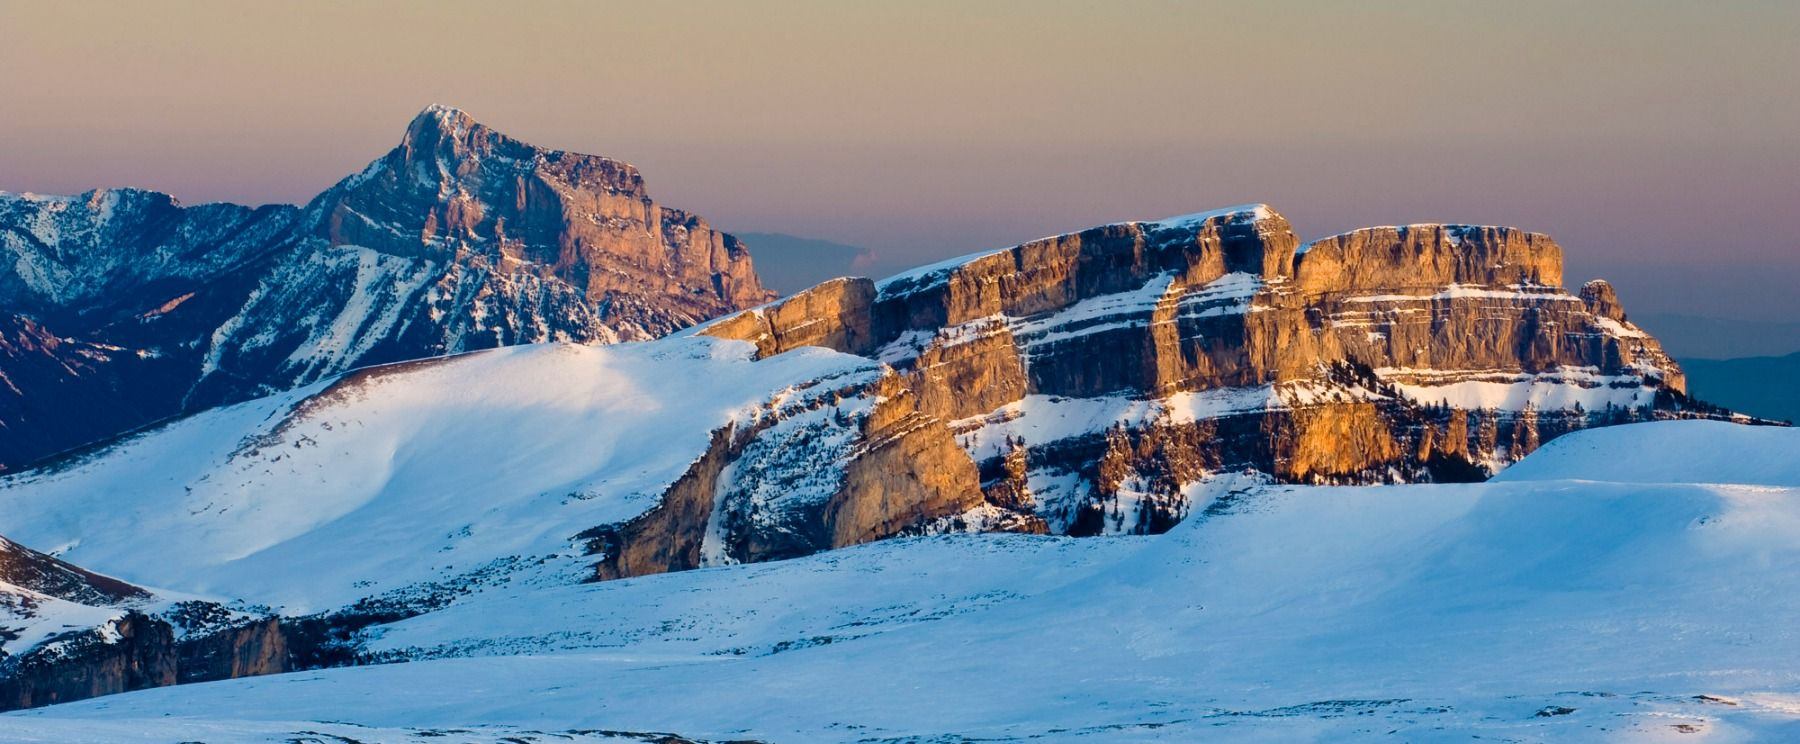 A photo of the Pyrenees in snow taken on Photography Holiday Spain with Aragon Active